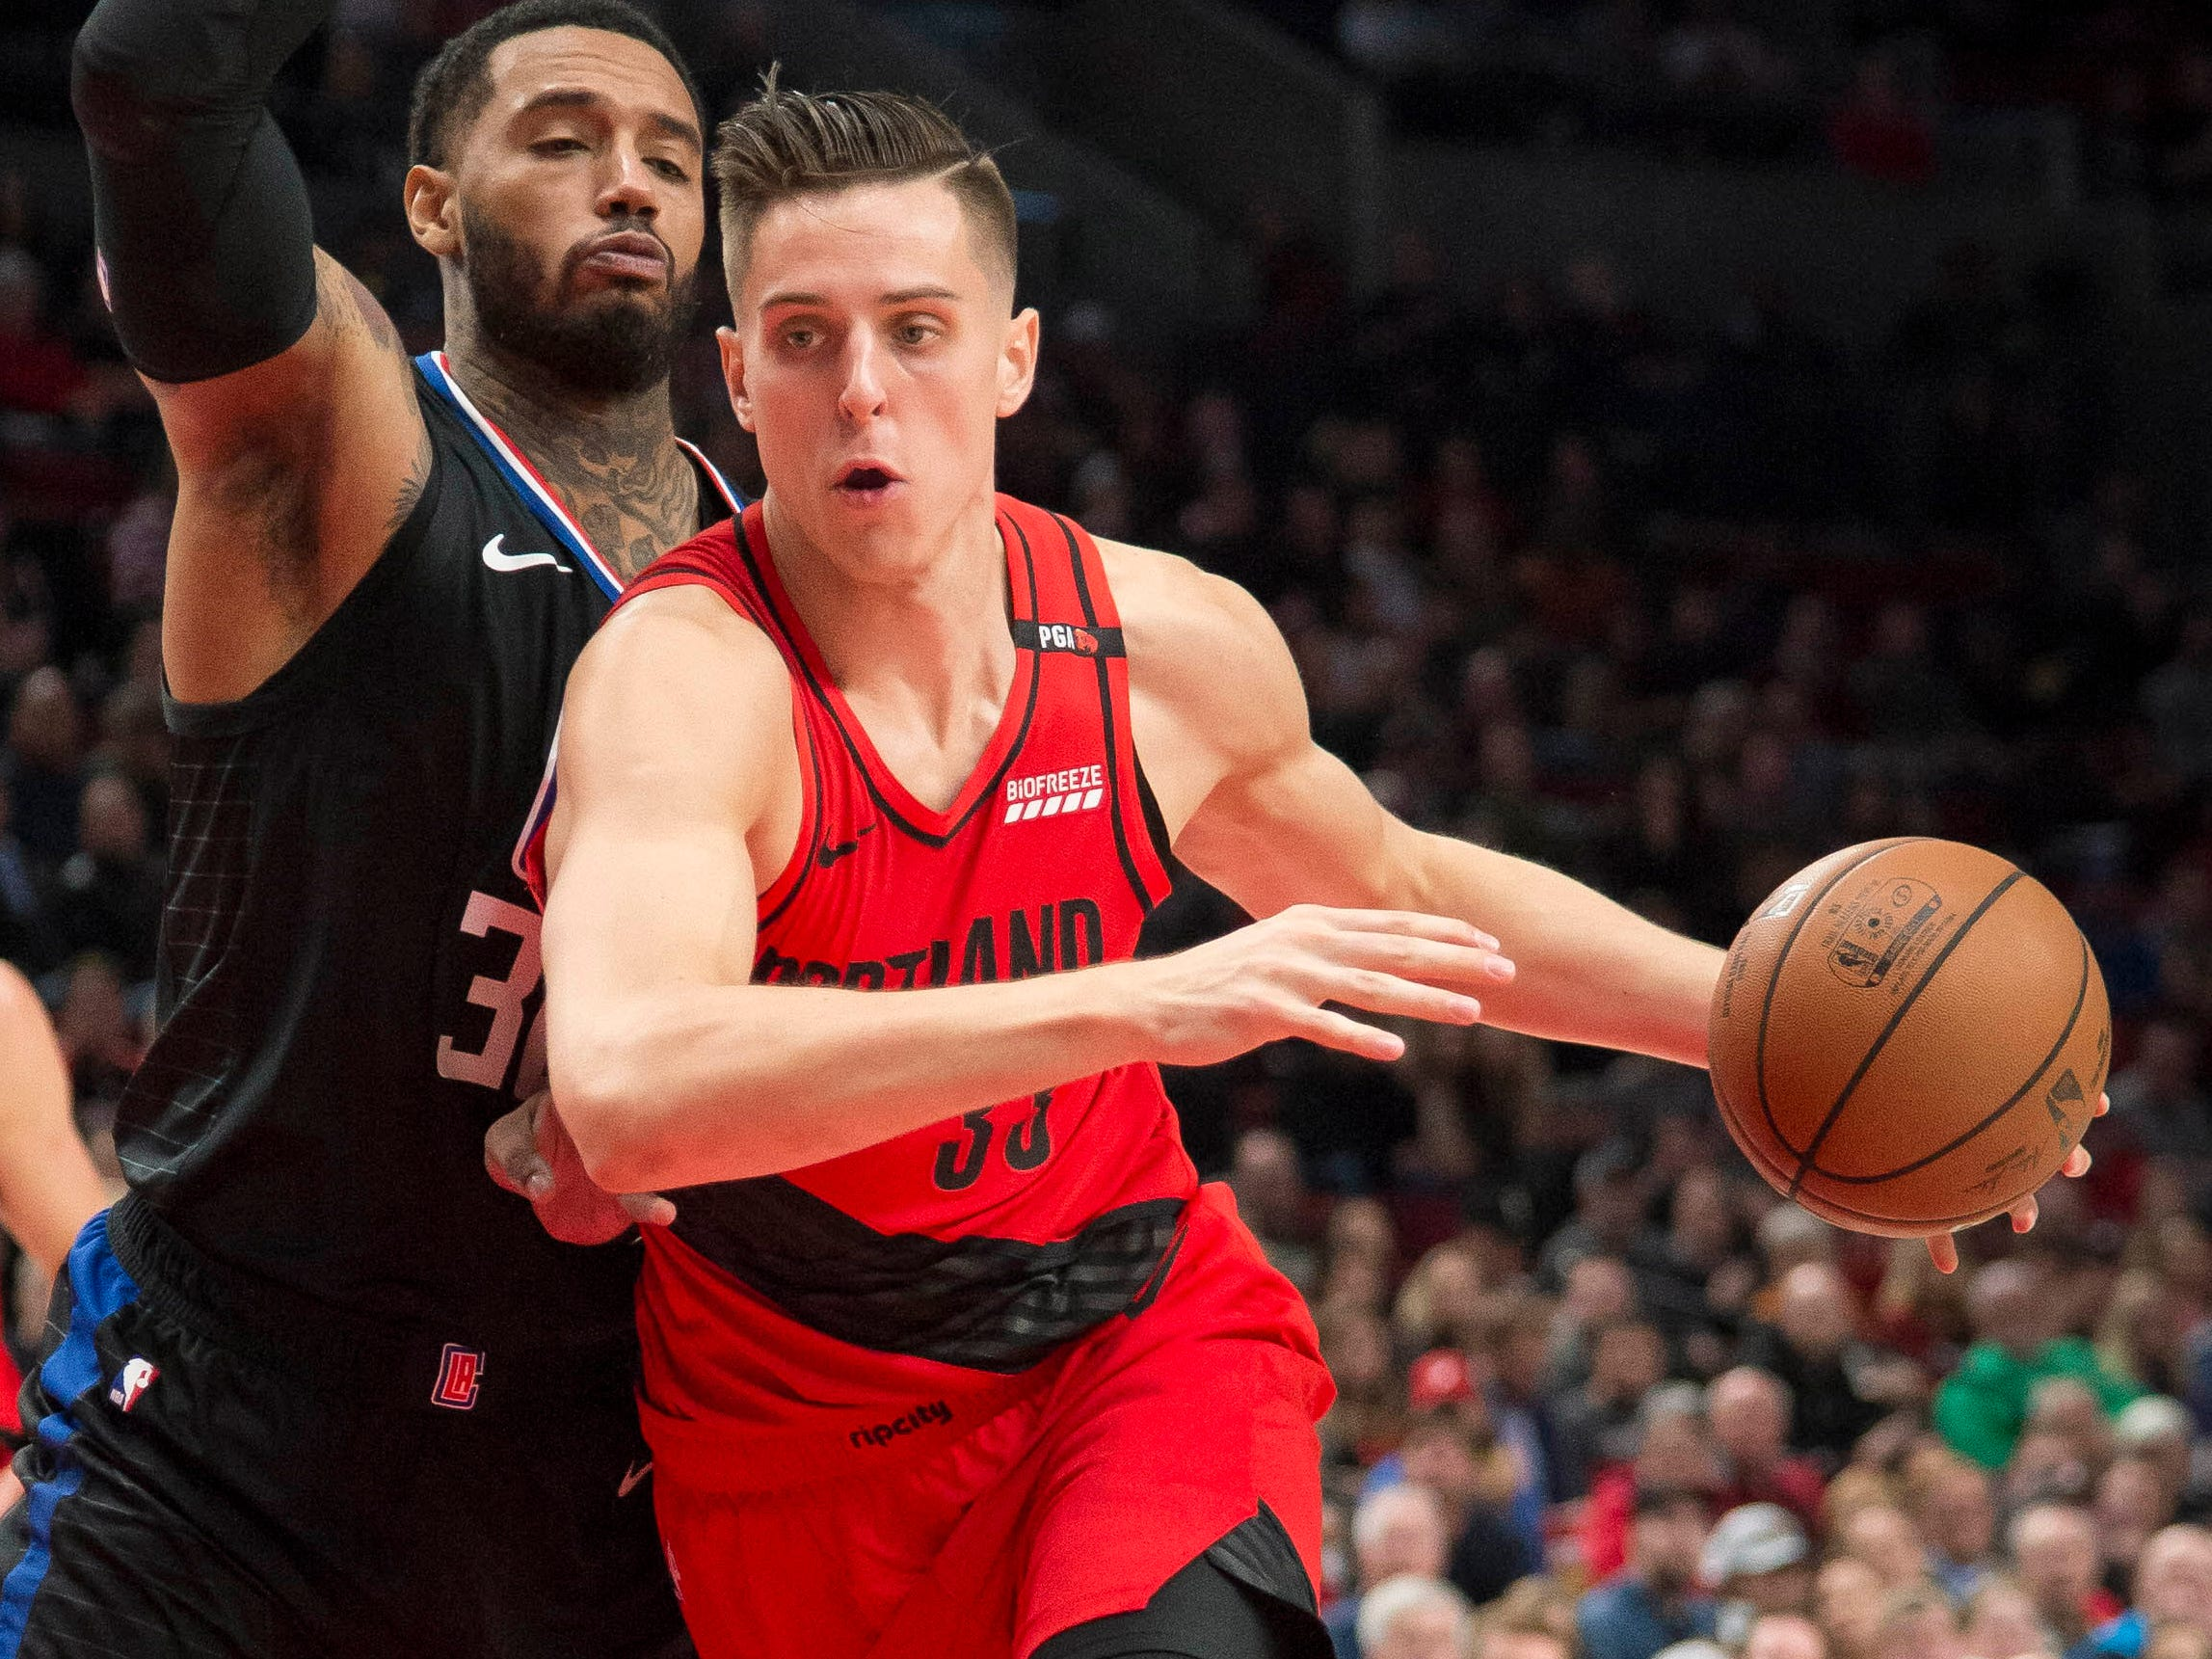 Zach Collins, Portland Trail Blazers — 21 (born 11/19/1997)